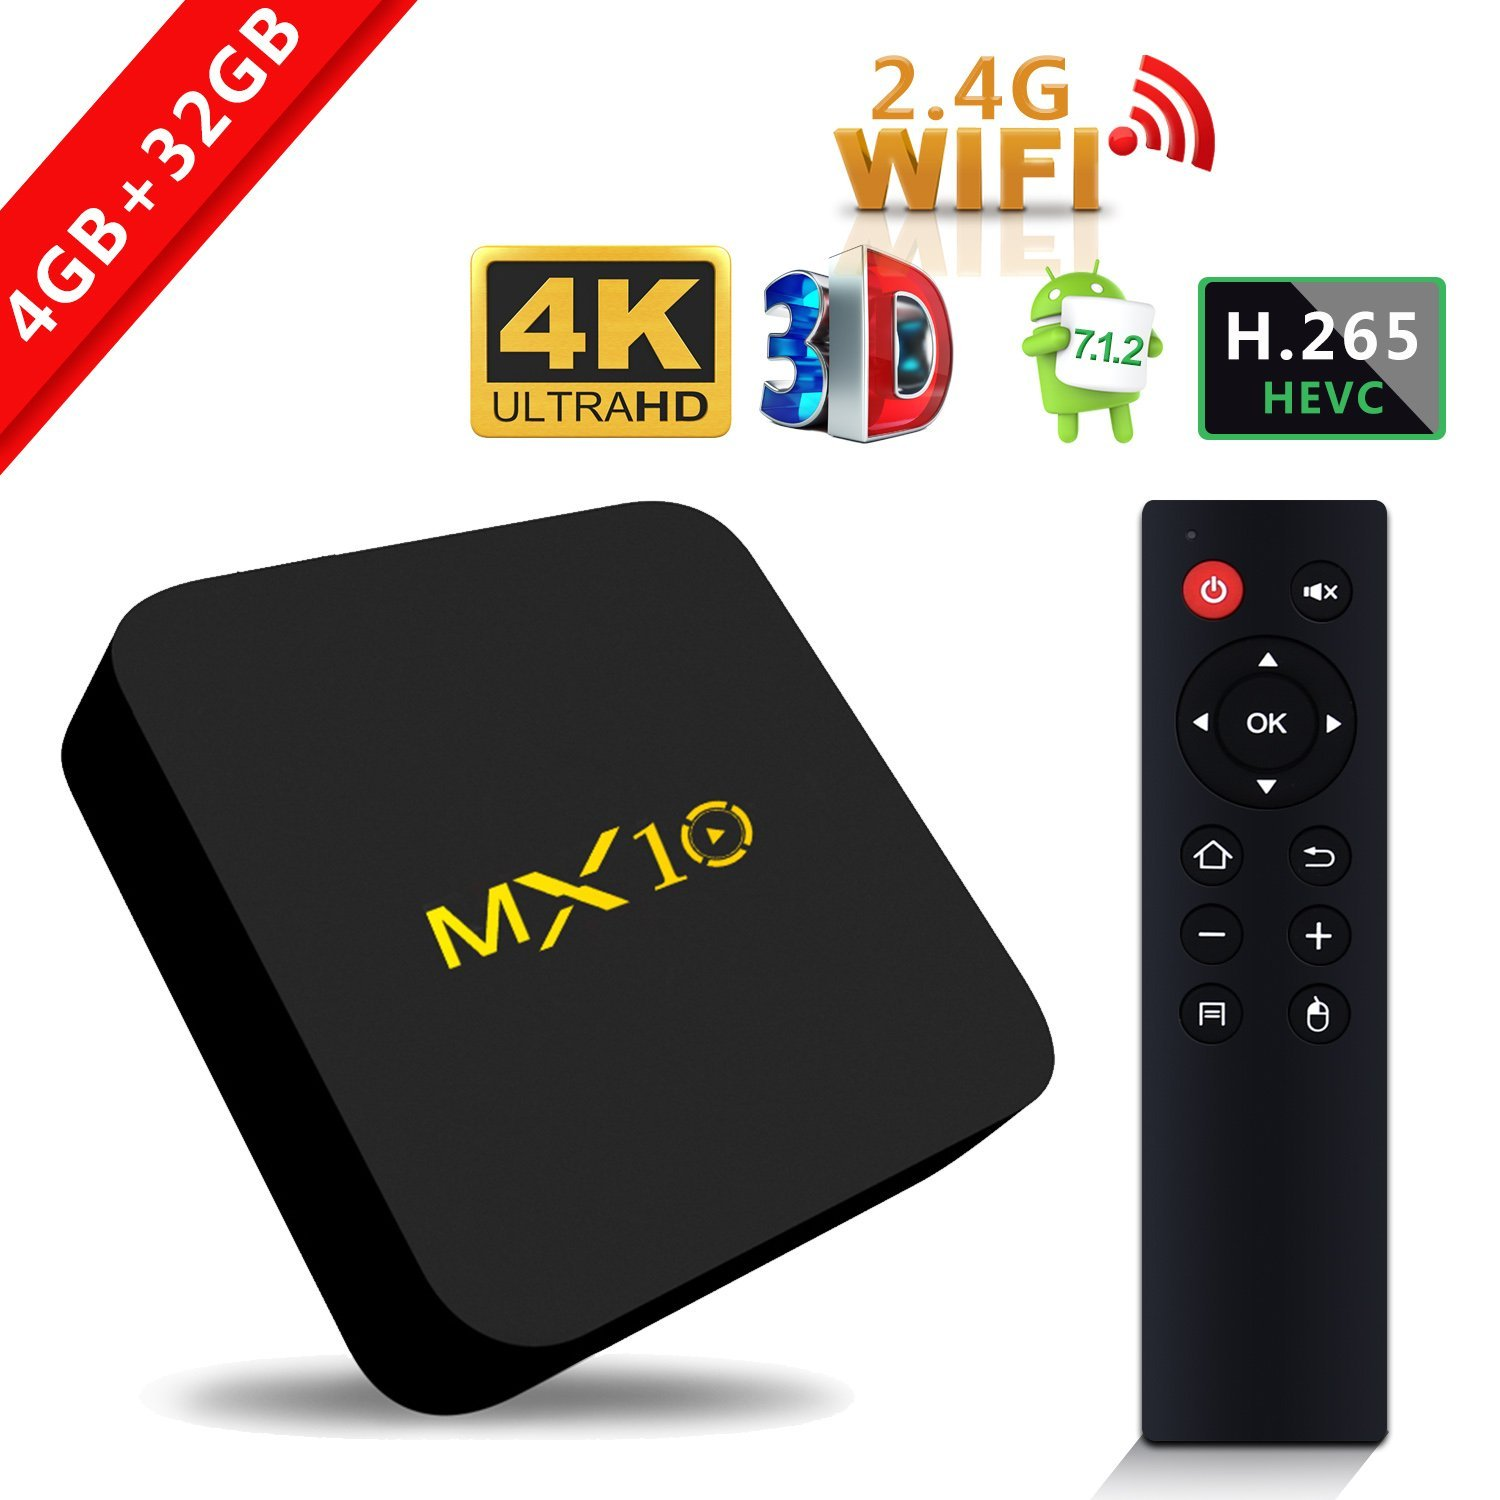 RK3328 MX10 android tv box 4GB DDR4 32GB eMMC Android 7.1 uad Core 2.4Ghz WIFI BT4.0 Set-Top BOX kodi 17.4 Smart 4K Media Player